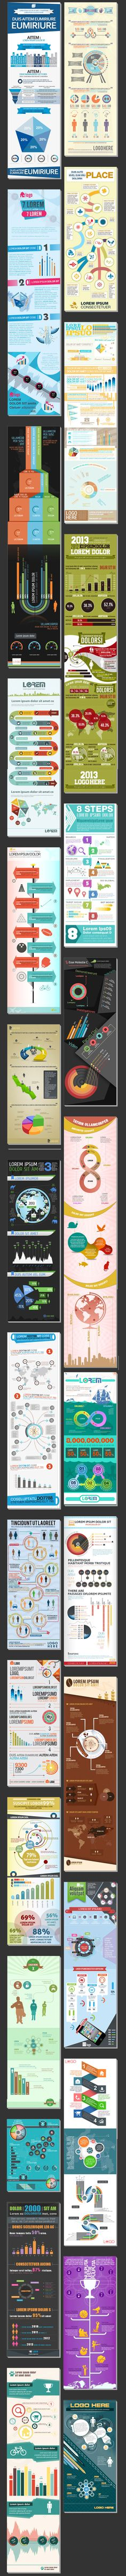 Deal of the week: Massive infographic bundle Photo